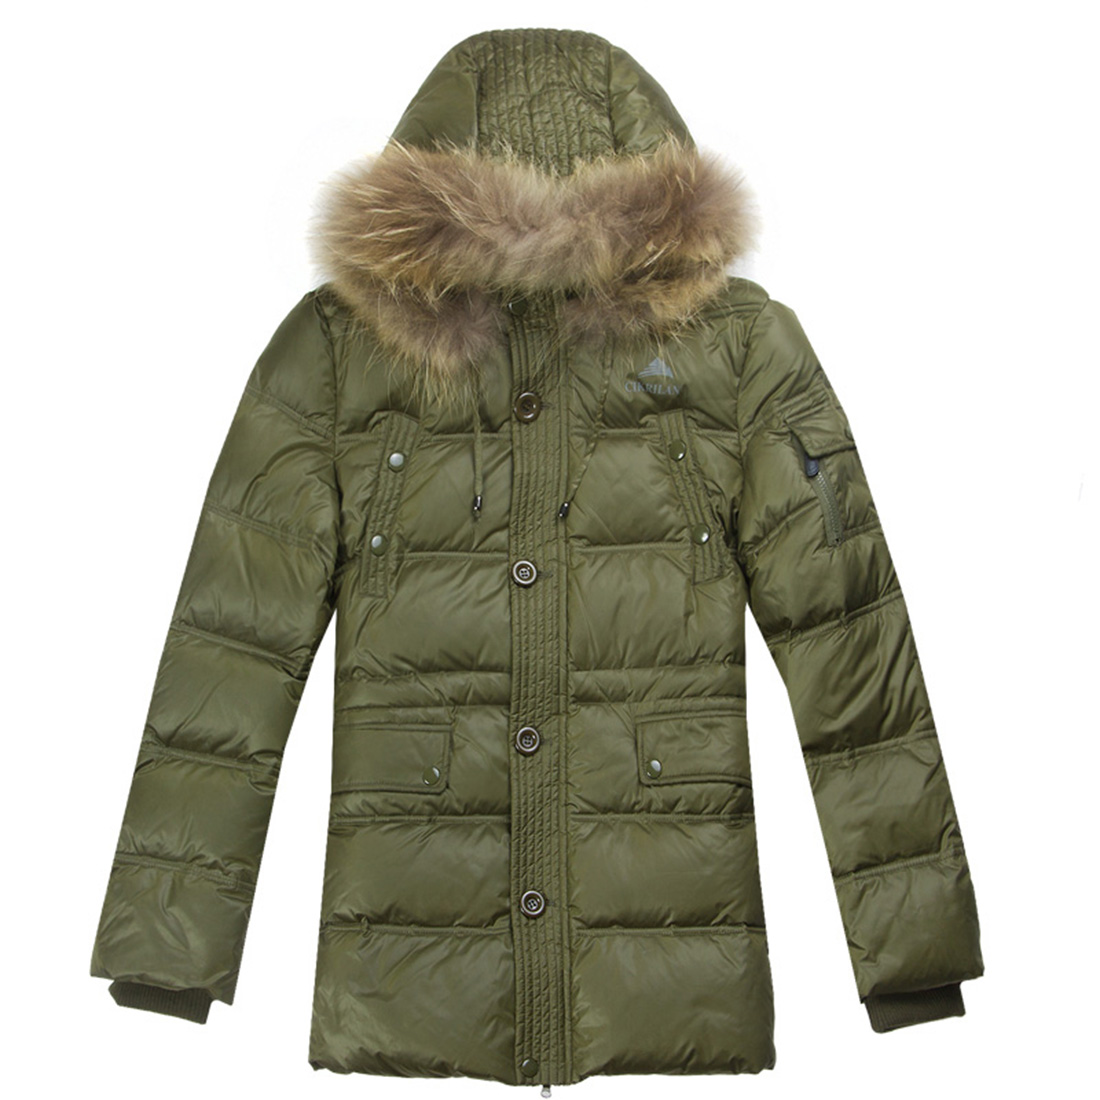 Men's Long Thick Fur Collar Down Parka Coat Winter Overcoat Outerwear Skiing Snow Jacket Hooded Coat Body Warm Outerwear